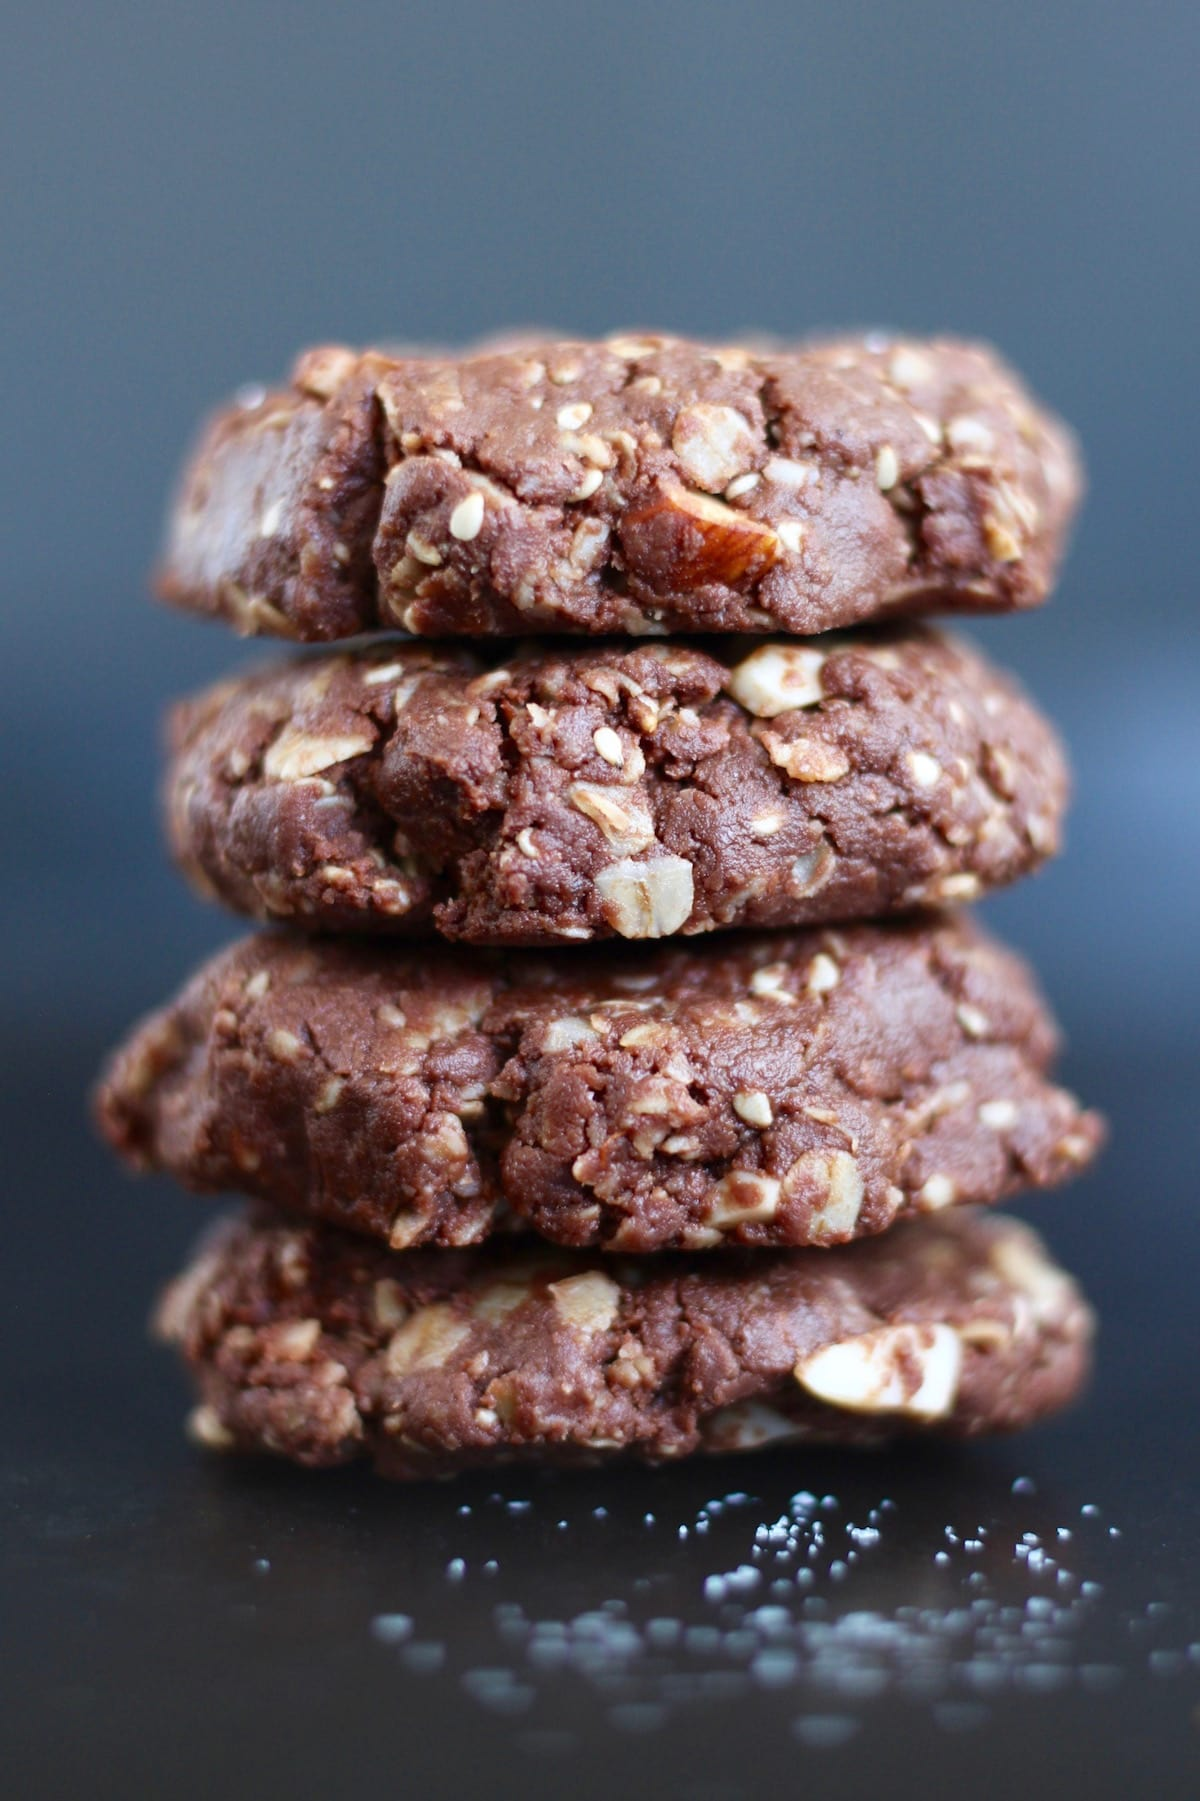 Chocolate Tahini No Bake Cookies stacked on each other